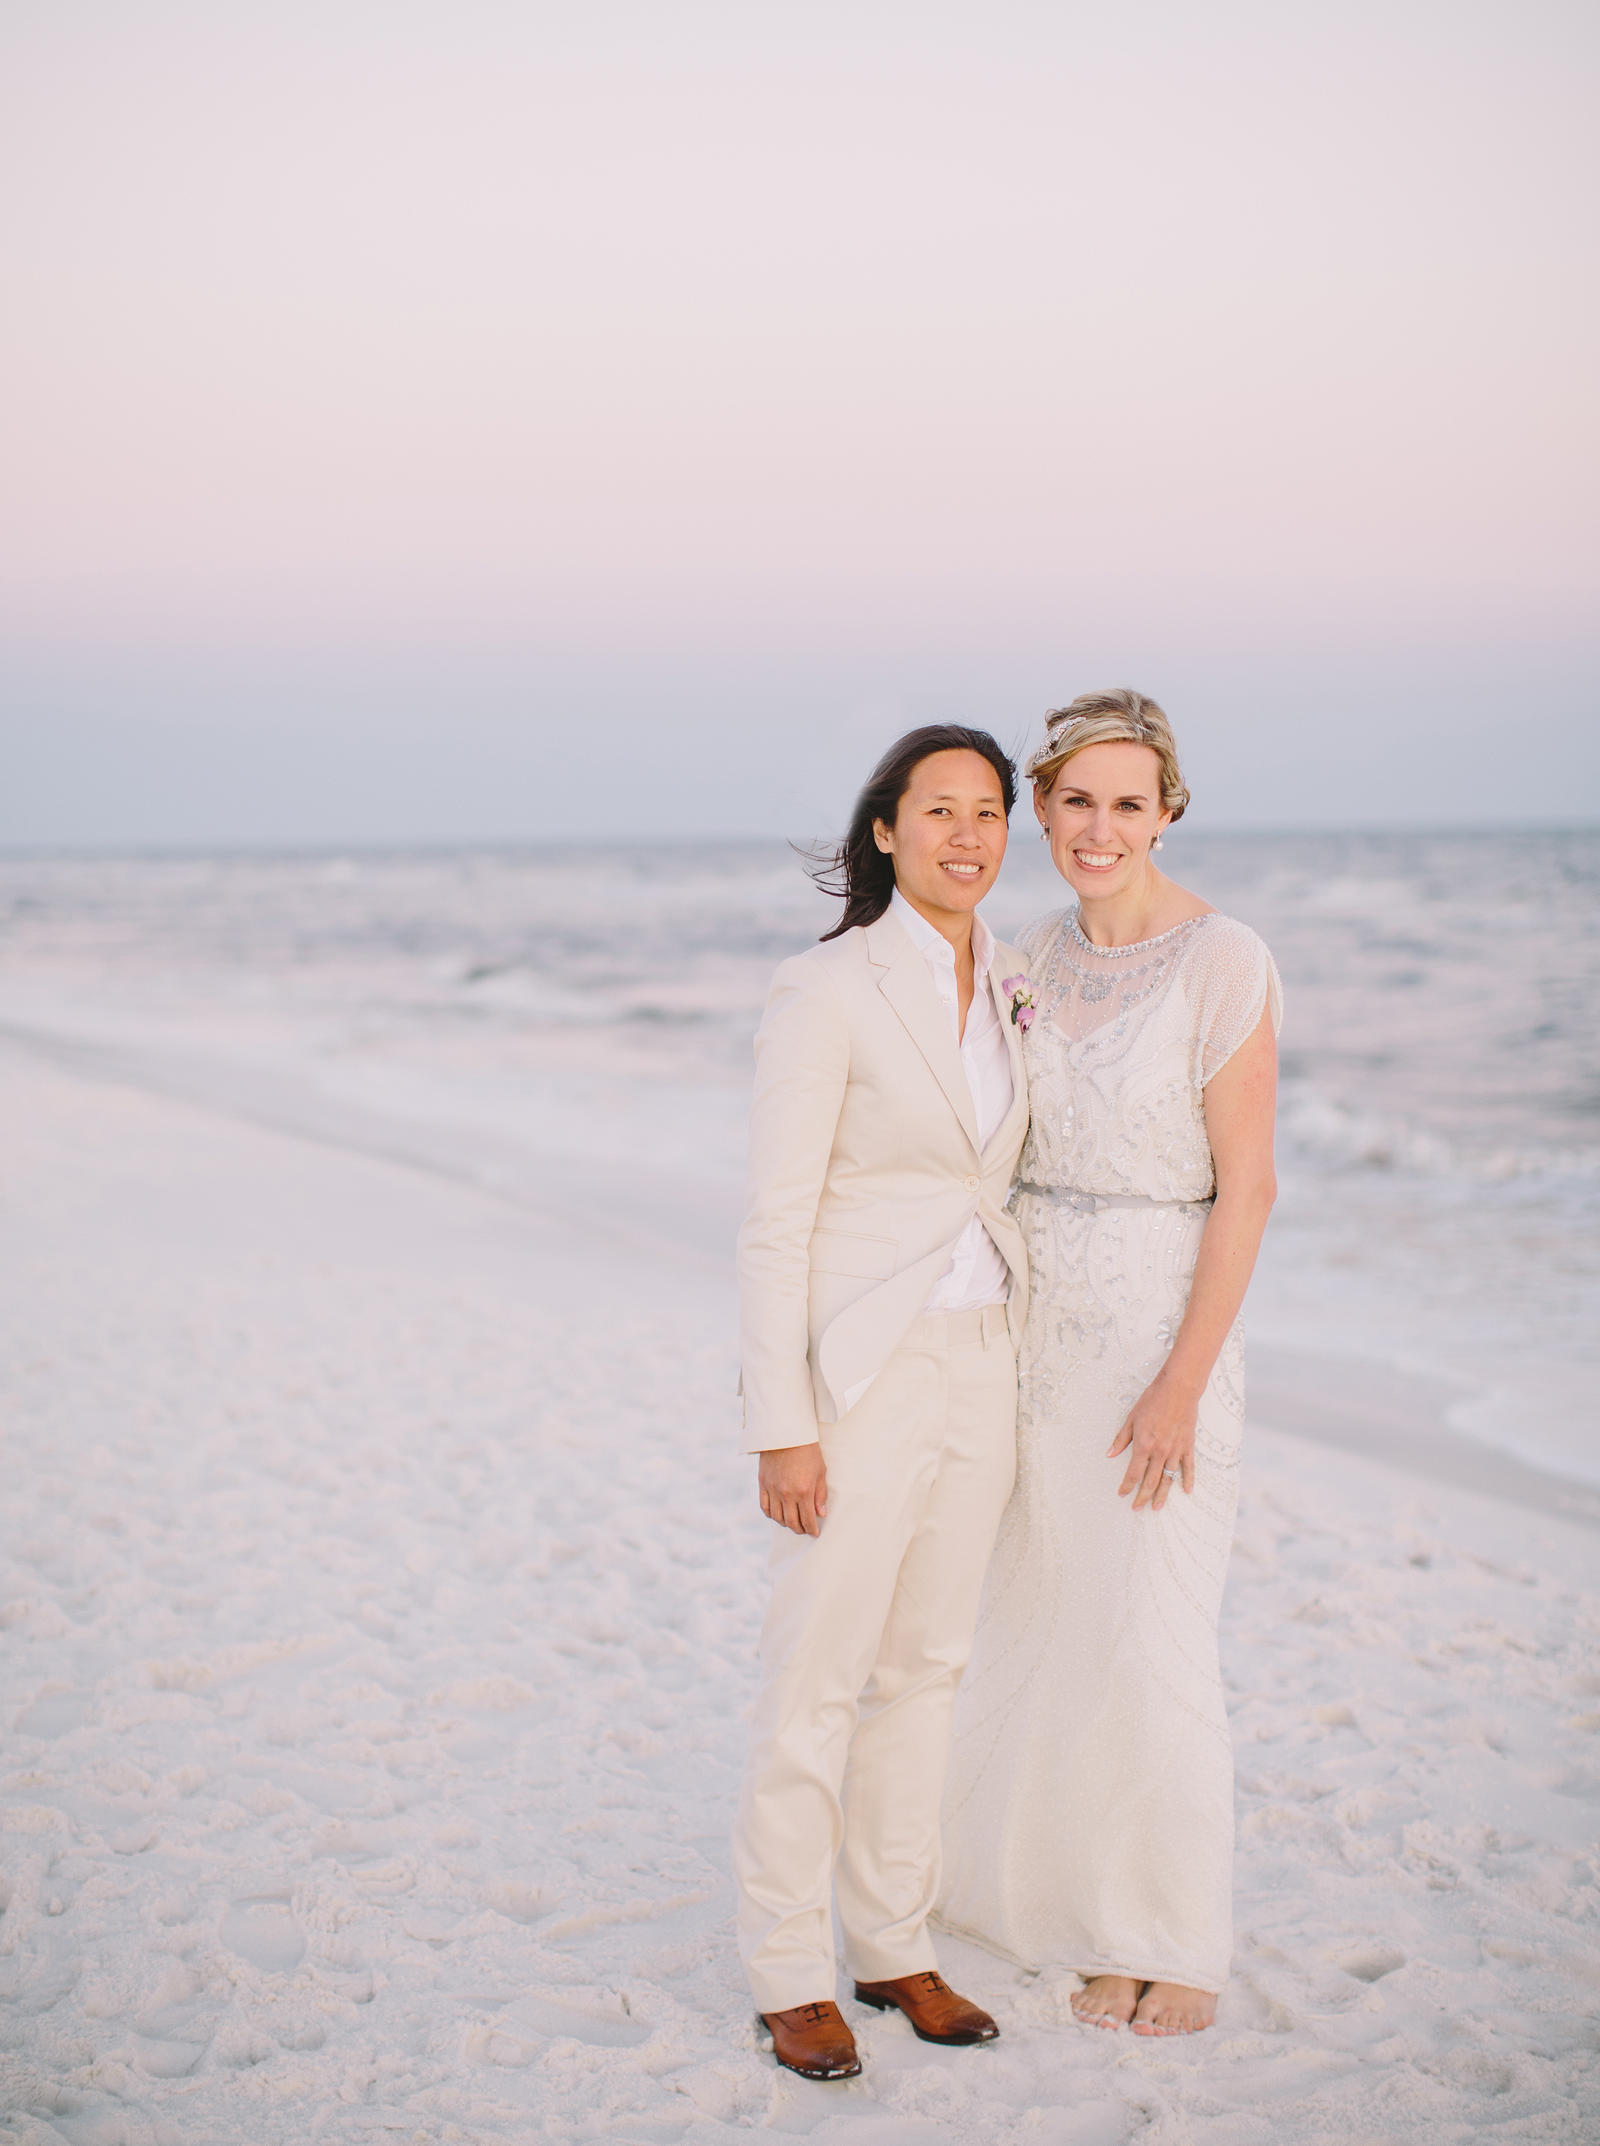 Wedding Photography | A bride and groom on the beach at Watercolor Inn, Florida